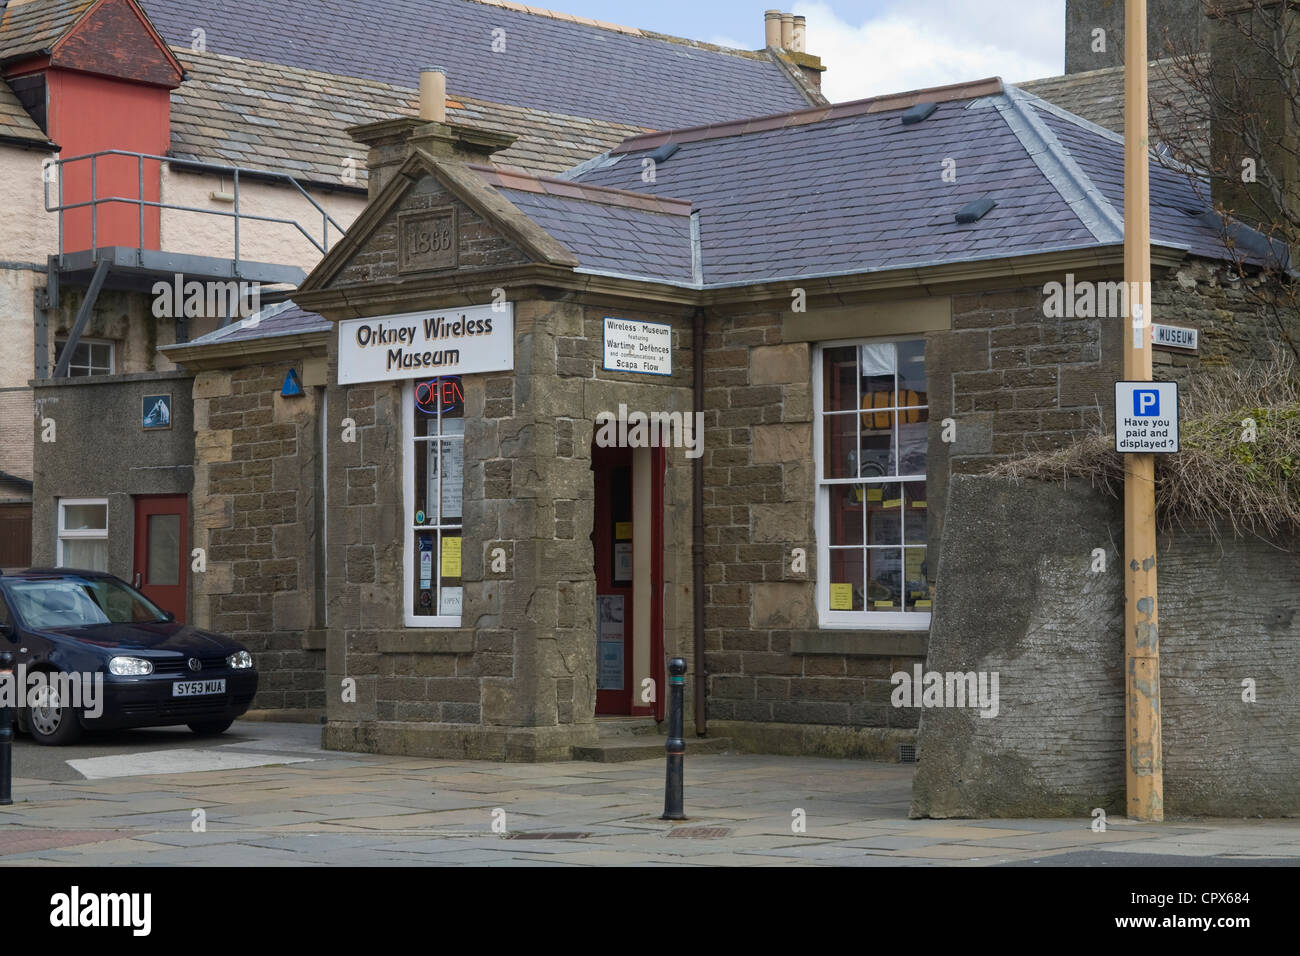 Kirkwall Orkney Wireless Museum showing extensive varied collection domestic defence wireless equipment collected - Stock Image